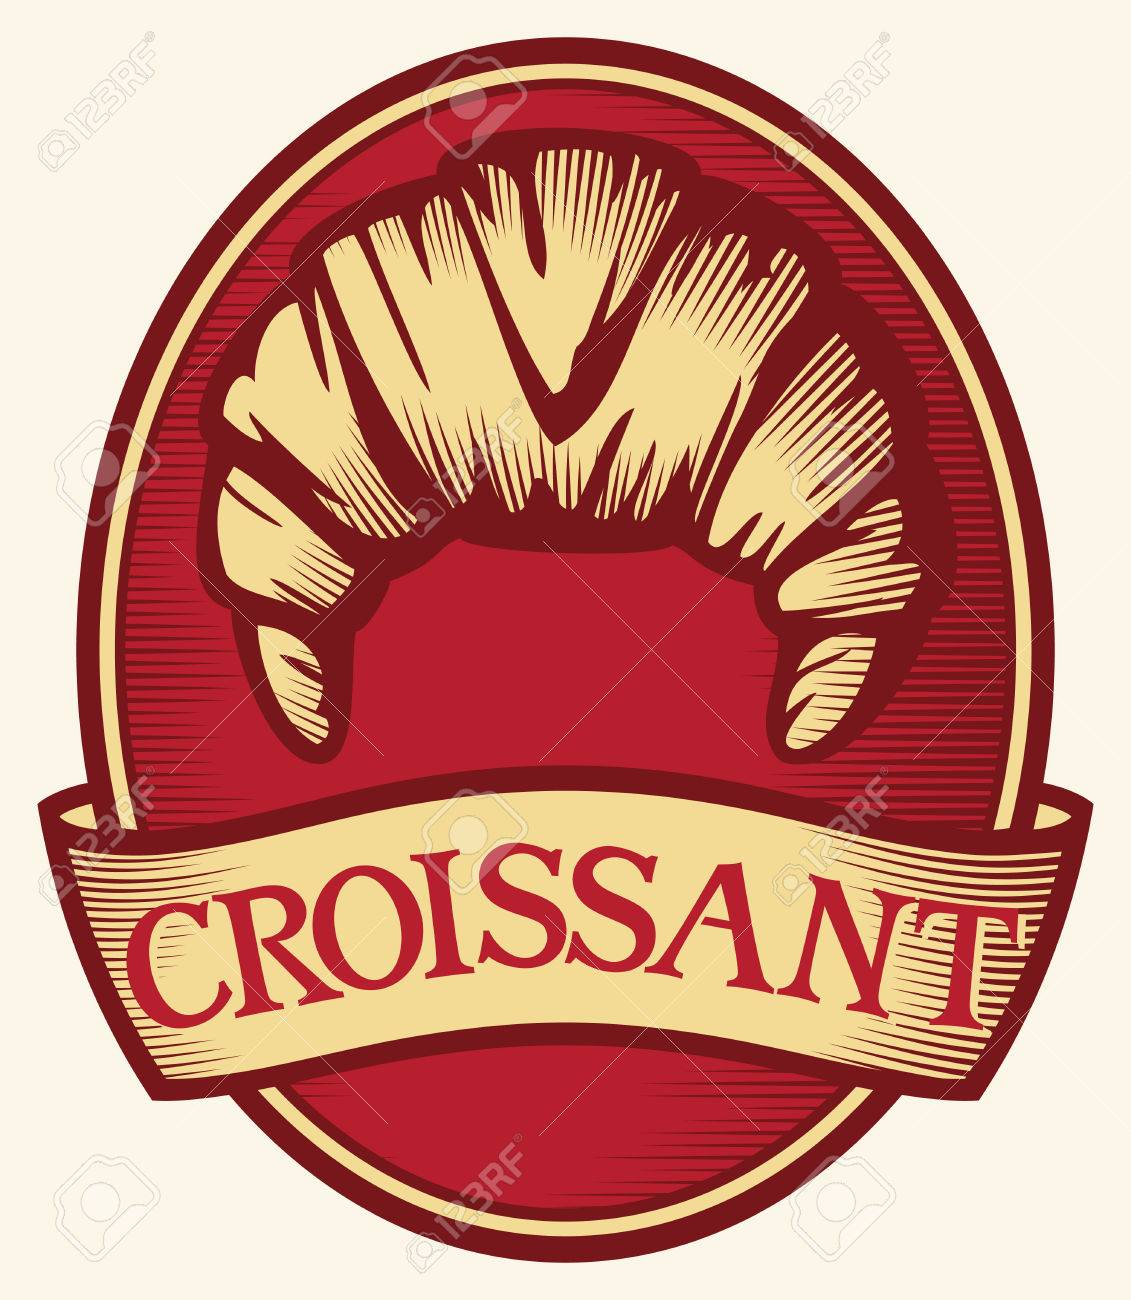 Save to a Lightbox   9660;    Find Similar Images    Share   9660; croissant label  croissant symbol Stock Vector - 23124997